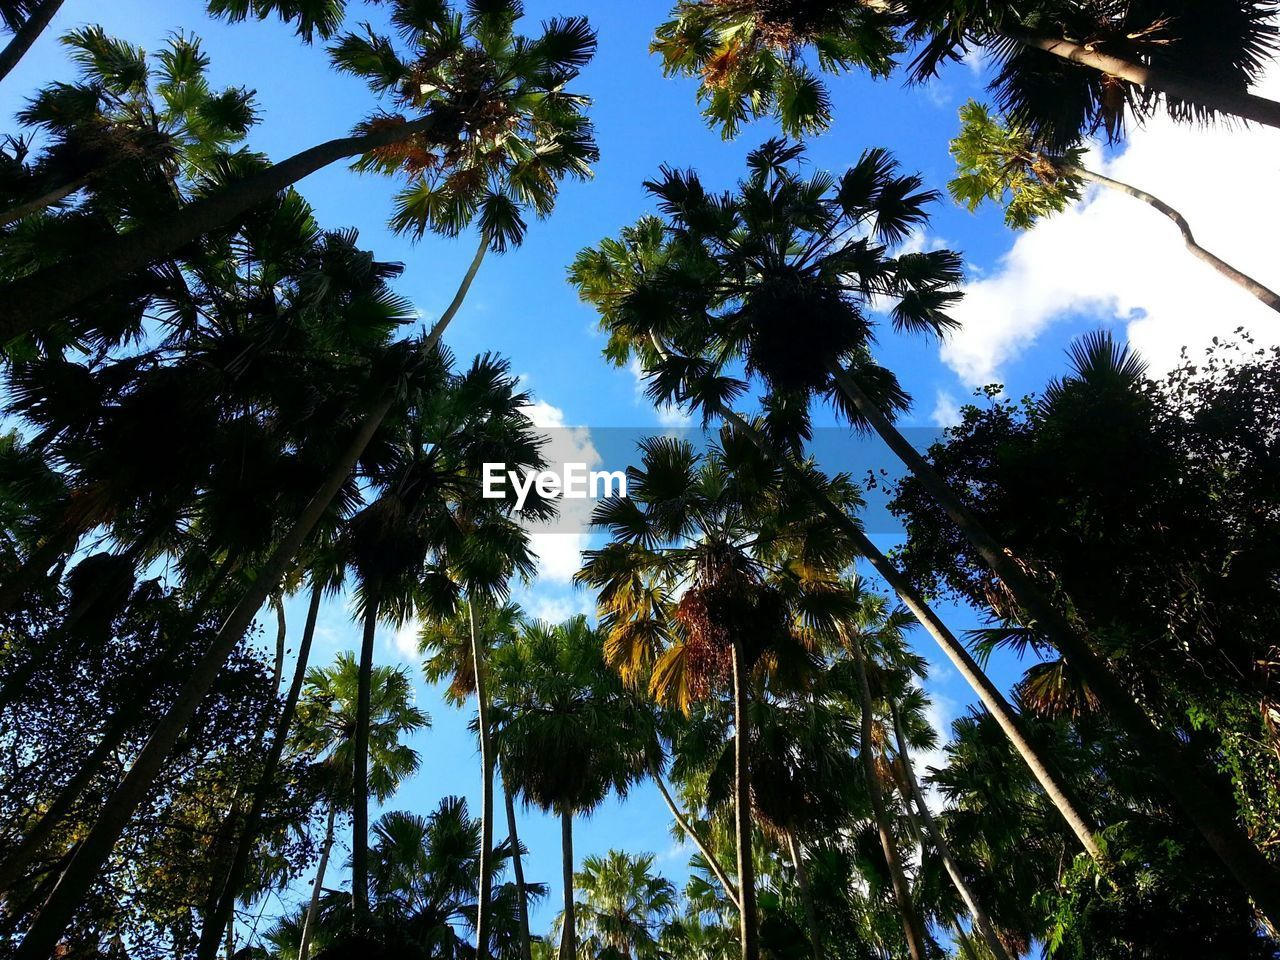 tree, plant, low angle view, sky, growth, beauty in nature, tropical climate, no people, tranquility, tall - high, palm tree, trunk, tree trunk, nature, day, tranquil scene, scenics - nature, land, outdoors, green color, coconut palm tree, directly below, tree canopy